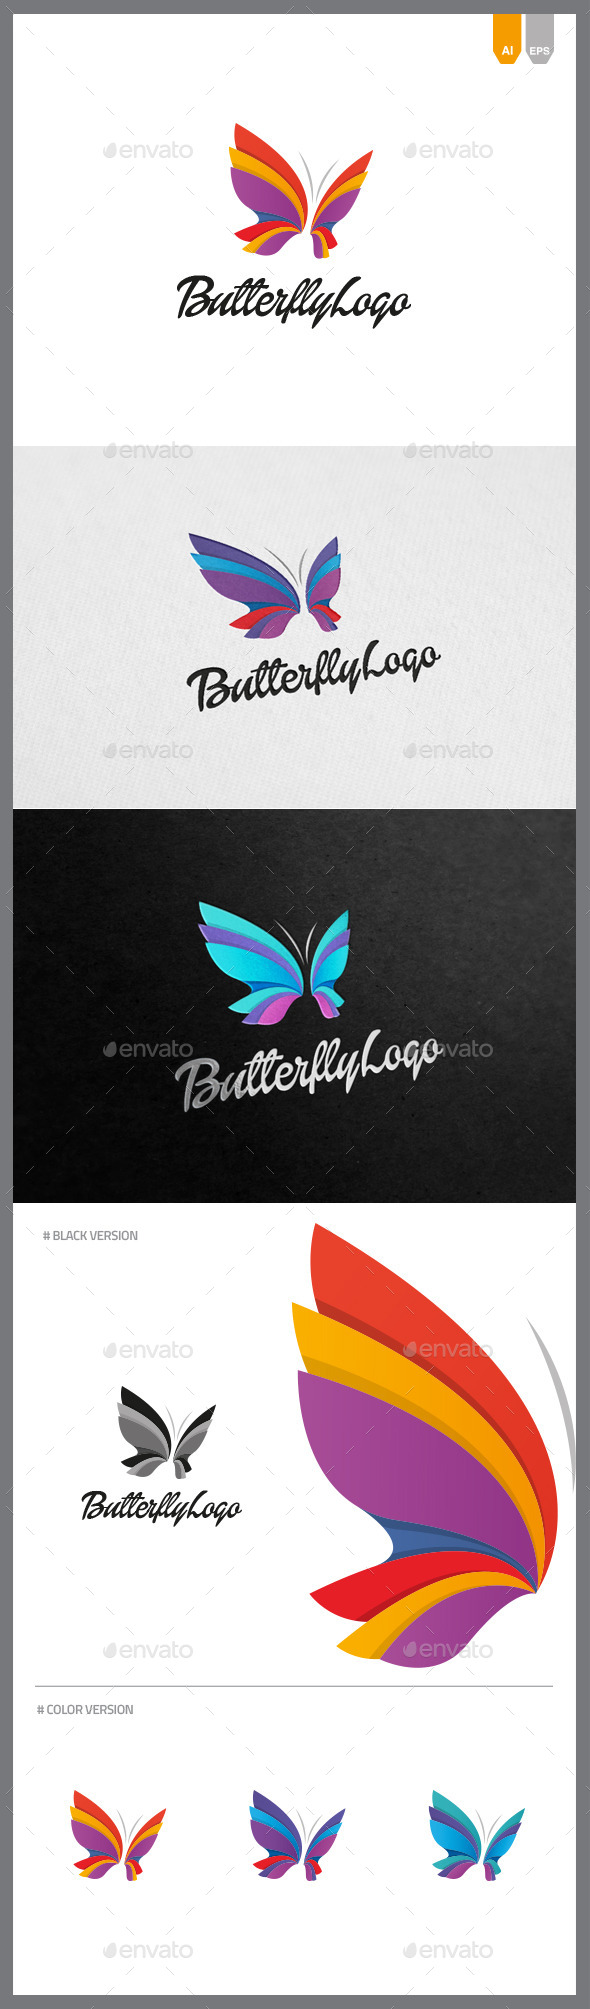 Logotype butterfly and letter b in different colour variants on a - Butterfly Logo Objects Logo Templates